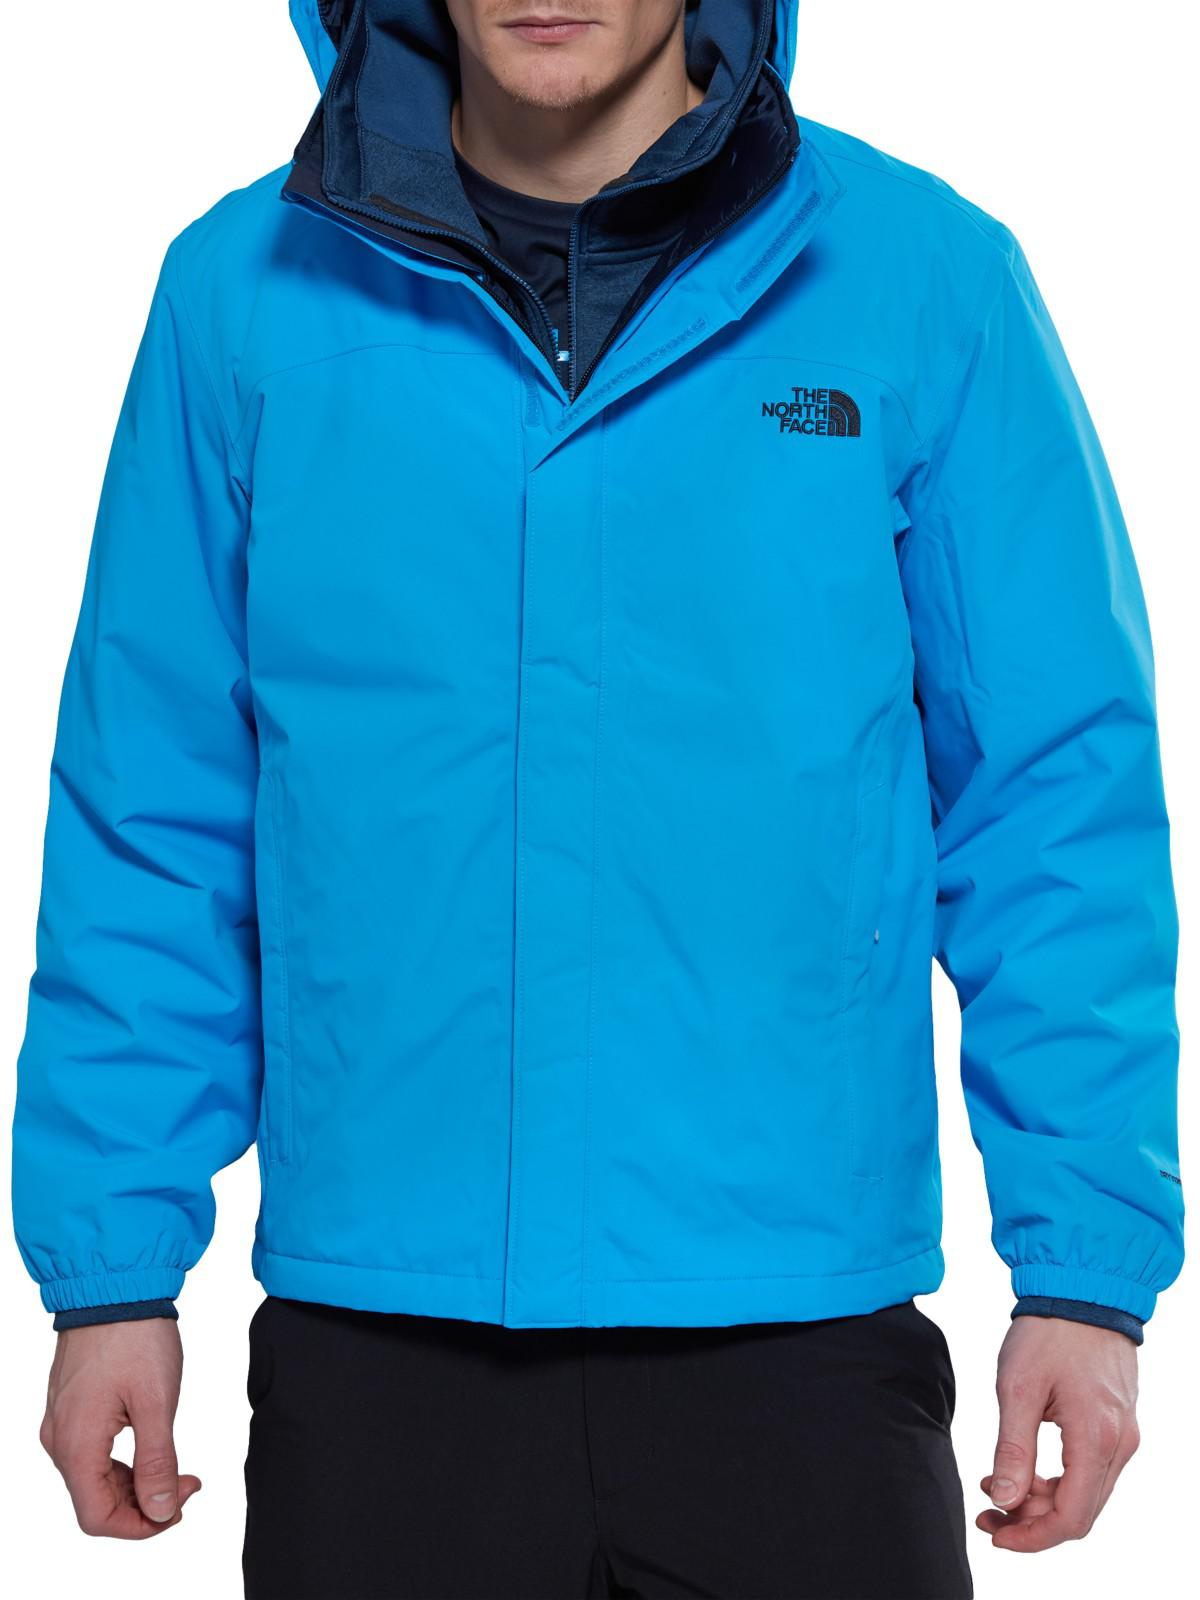 The North Face Synthetic Resolve Insulated Men's Jacket in Blue for Men